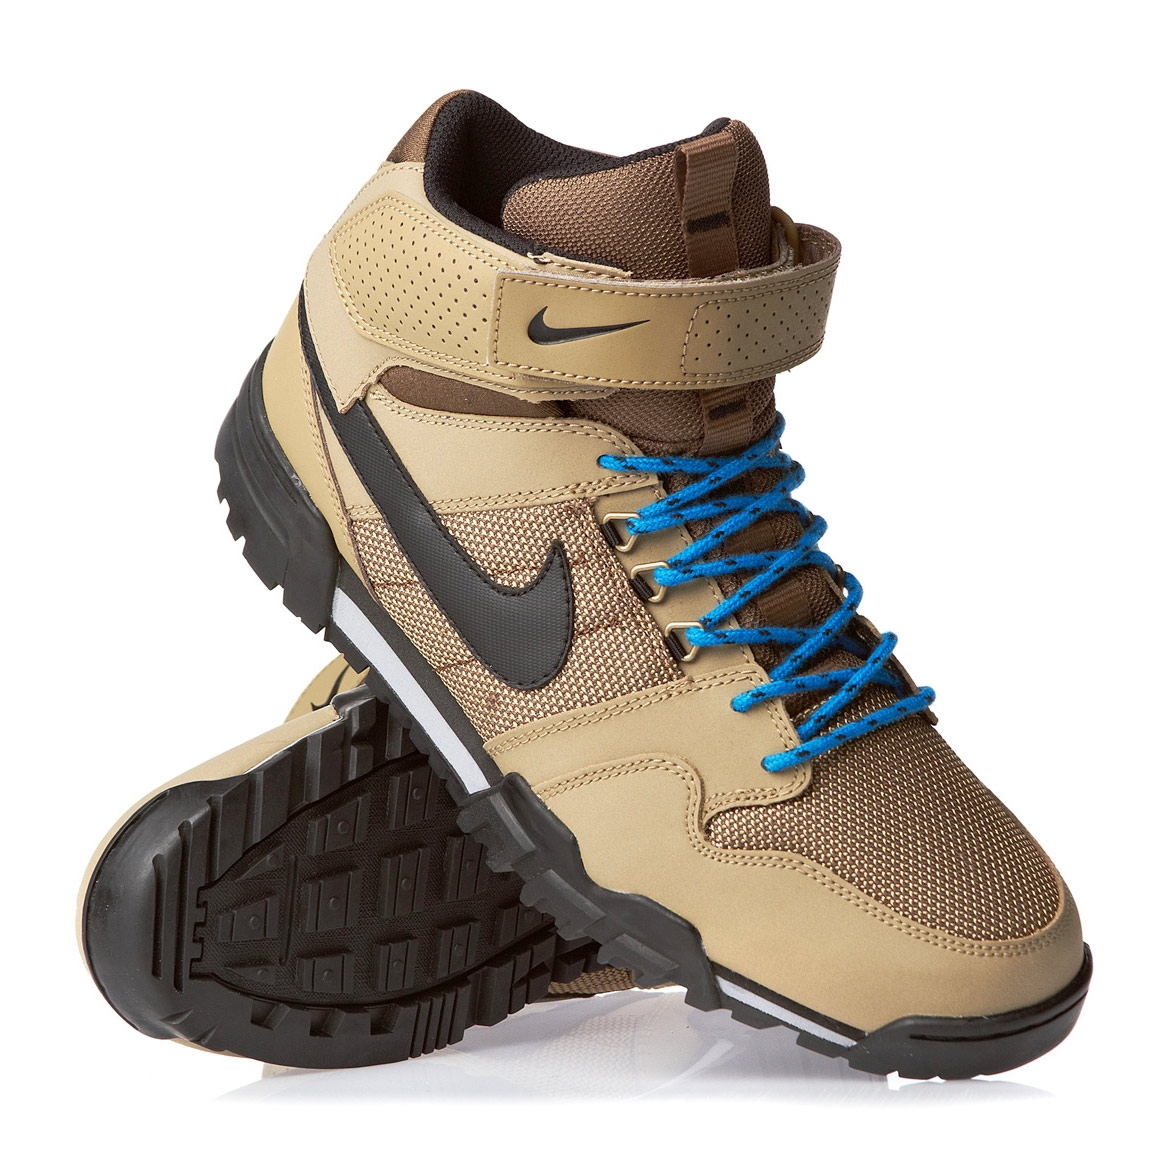 Nike Action Mogan Mid 2 Oms